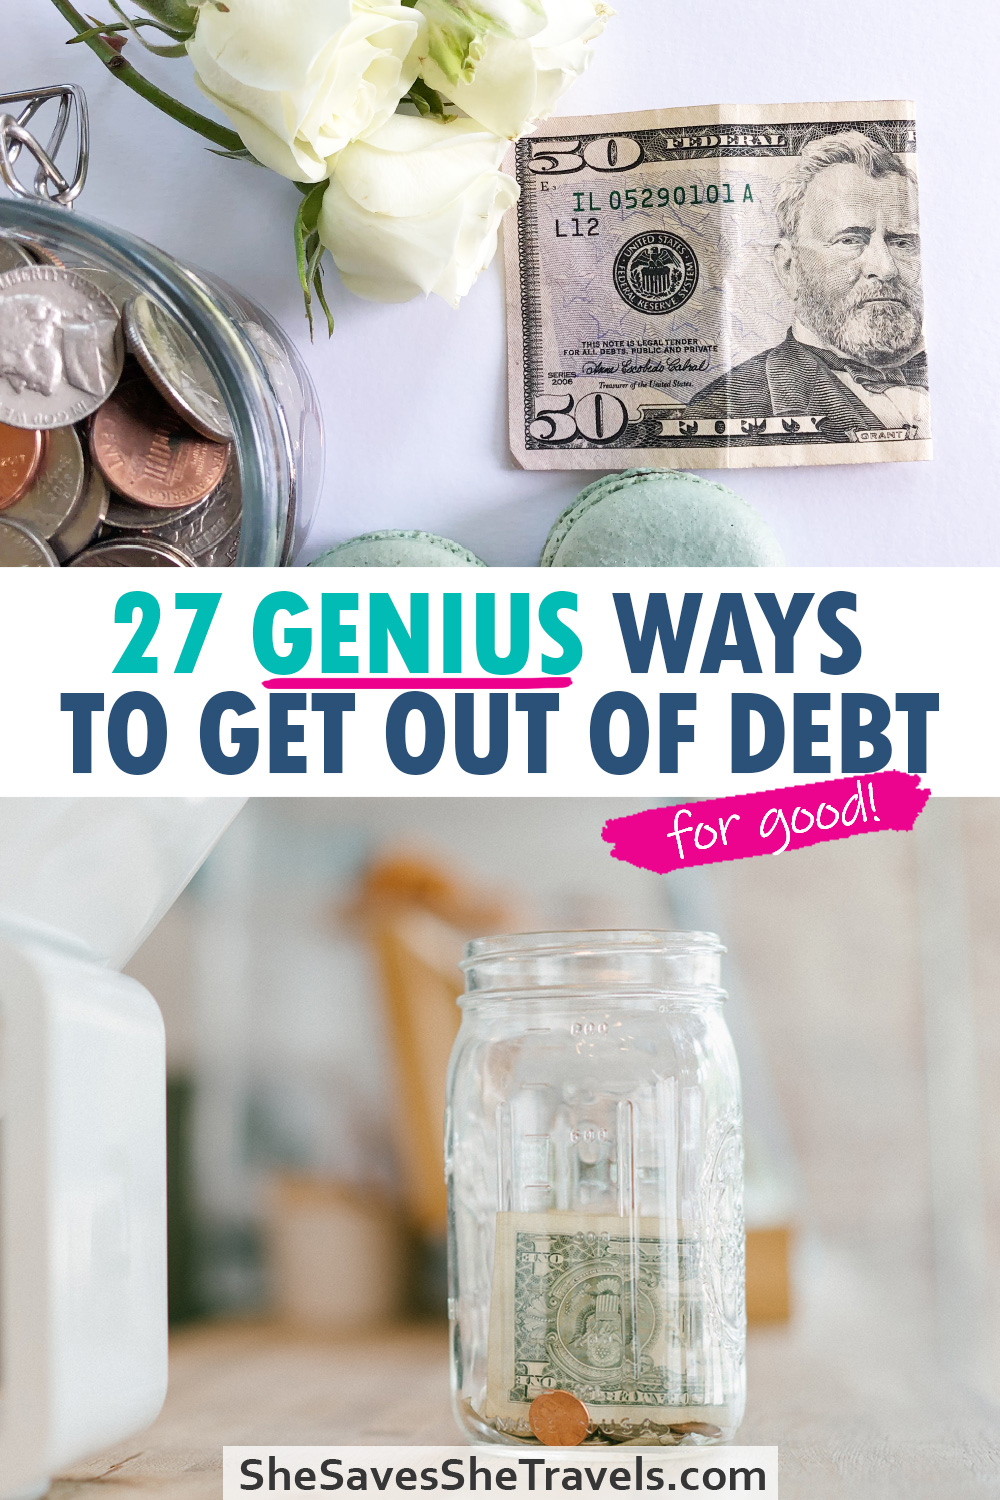 27 genius ways to get out of debt